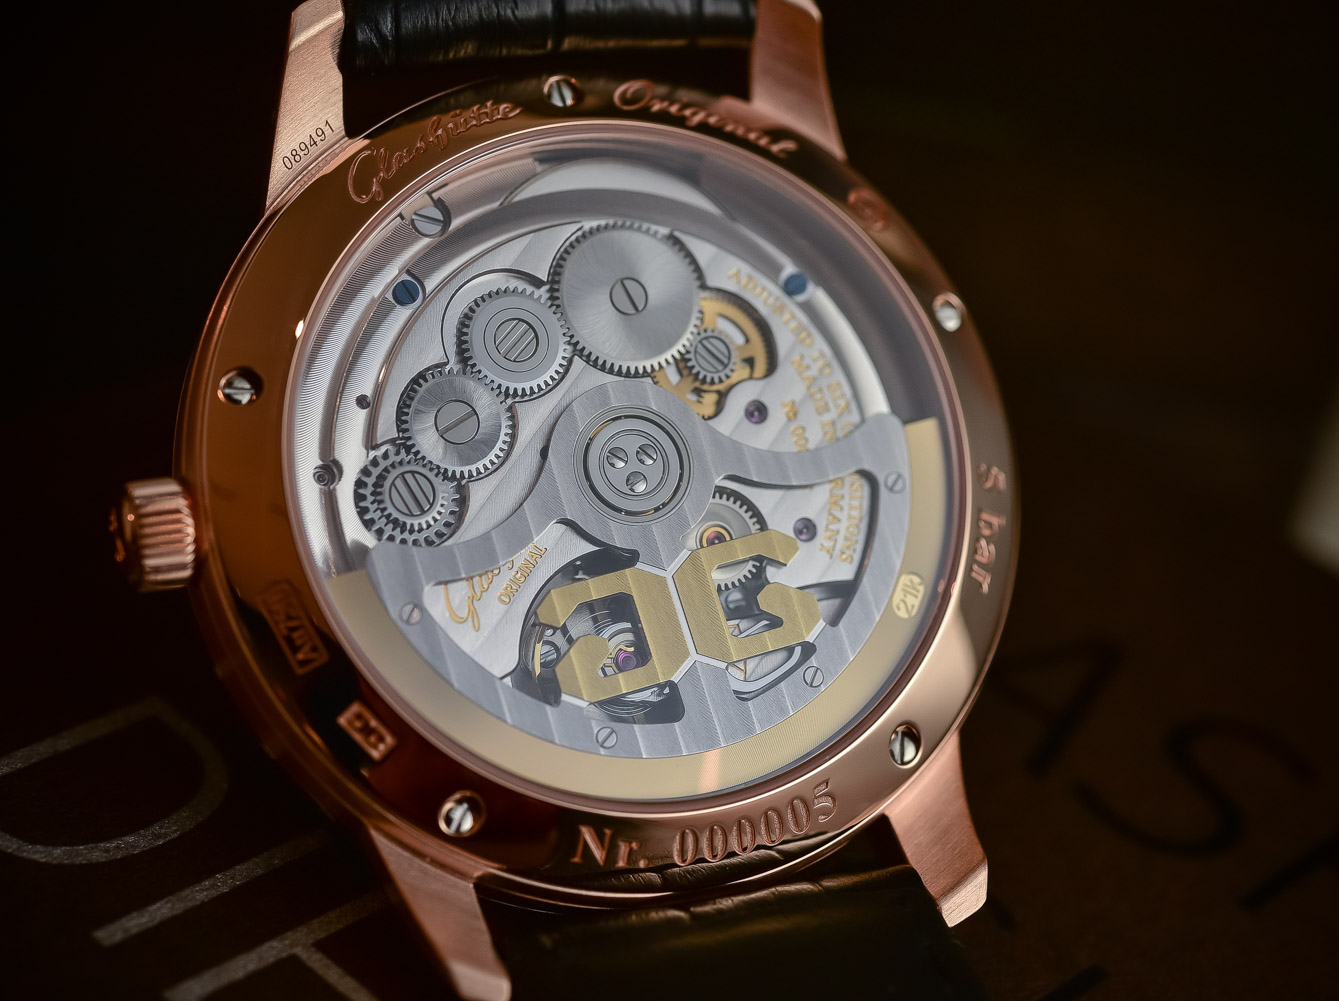 5 High End Watches Made In Germany Germans Do It Better Emblem Plat D Deutschland Jerman 323 Mm Diameter The Caliber 36 Features Traditional German Design Elements Such As Its Three Quarter Plate Glashtte Striping And Blue Screws Visible